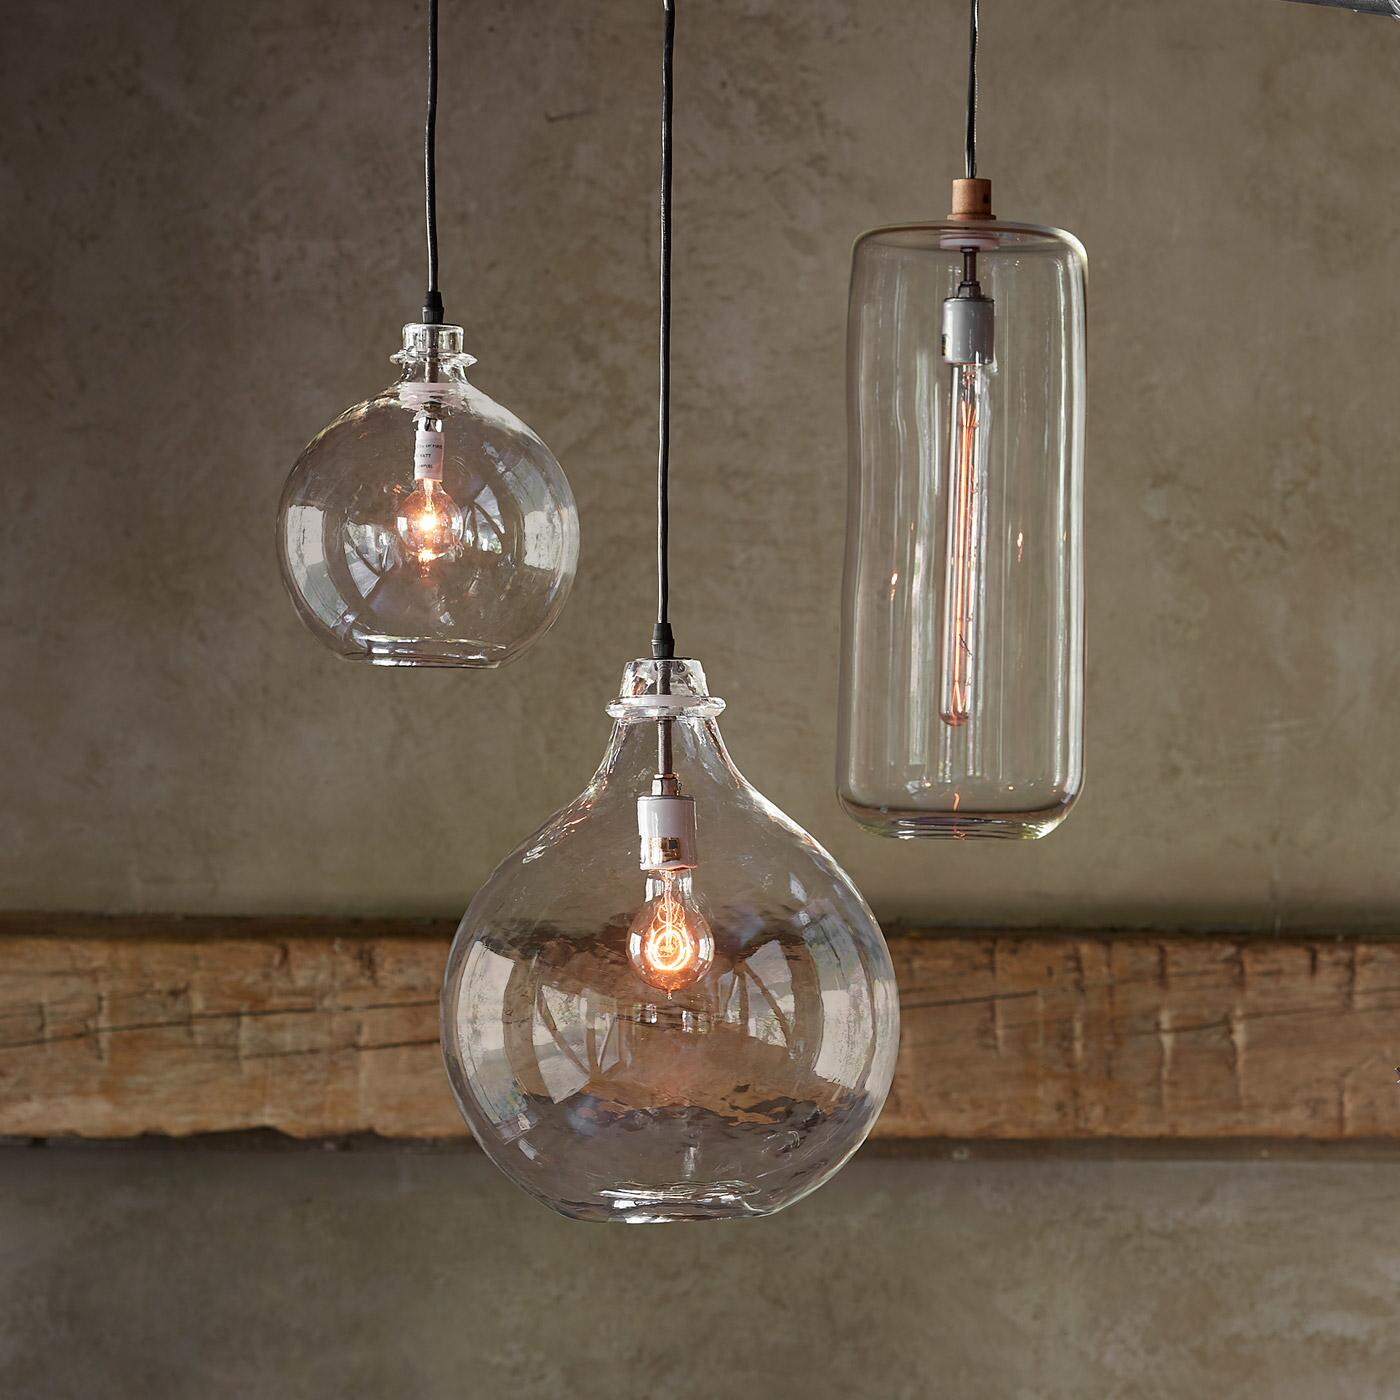 SALON GLASS DEMIJOHN PENDANT LIGHT: View 2